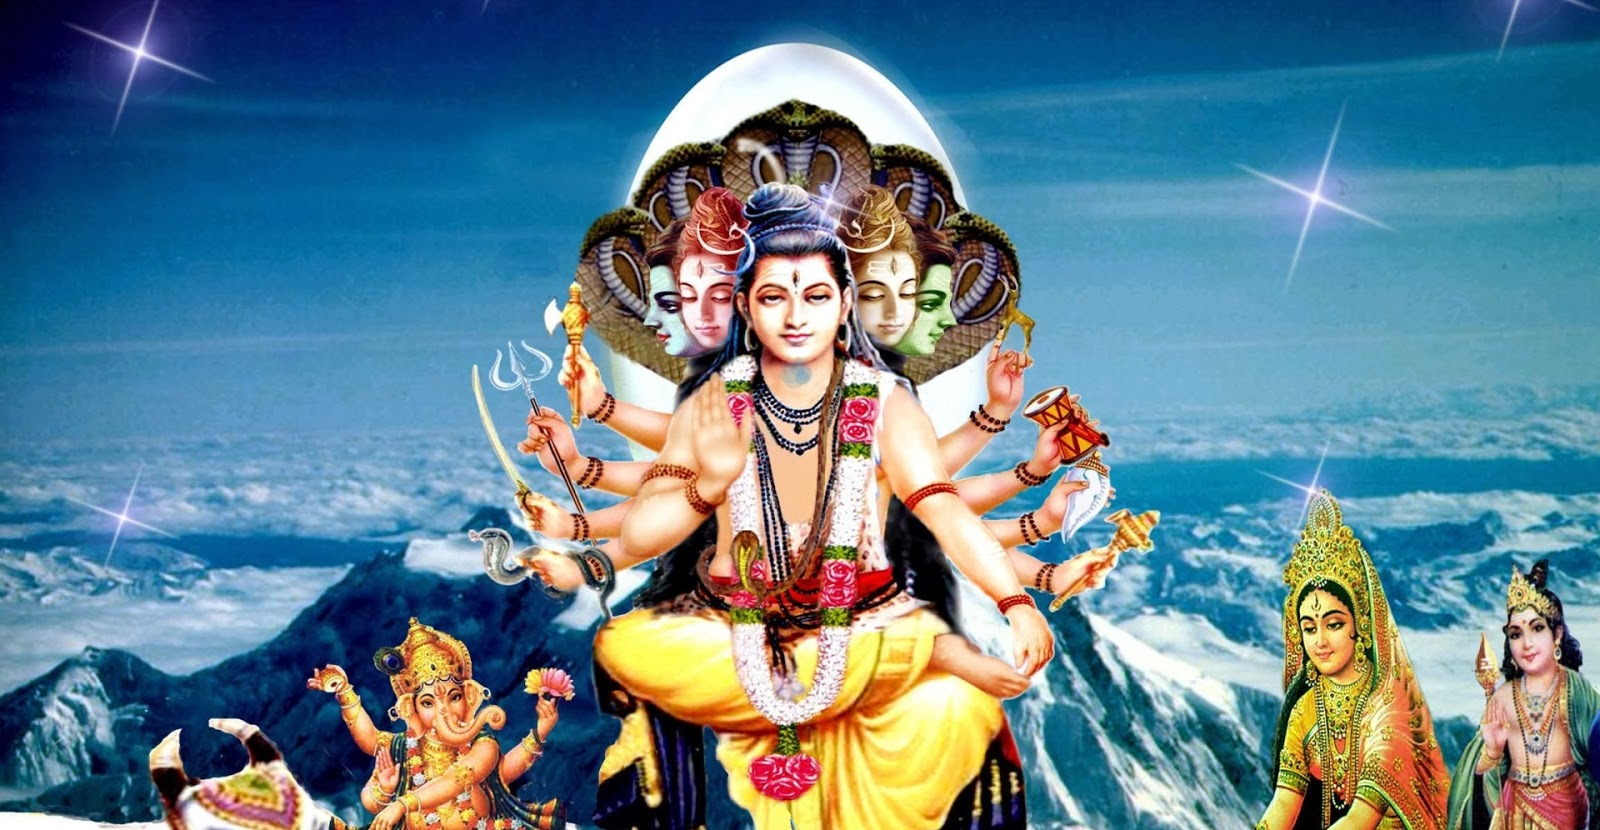 Happy Maha Shivaratri 2014 HD Wallpapers and Images Lord shiva and other Gods